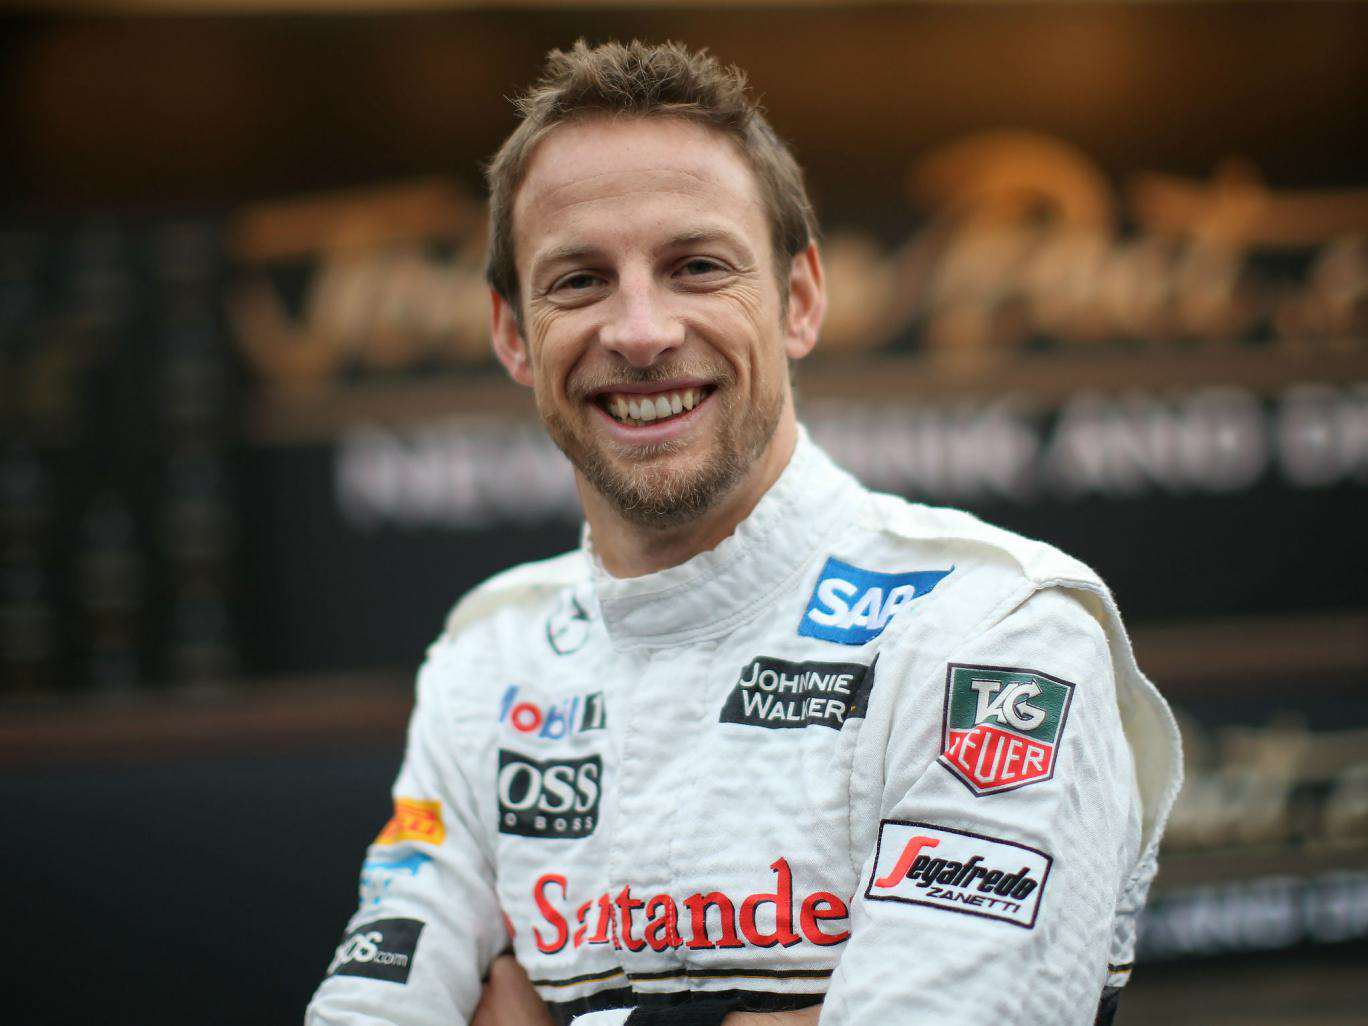 jenson button Top Gear Fans Have Already Found A Replacement For Chris Evans